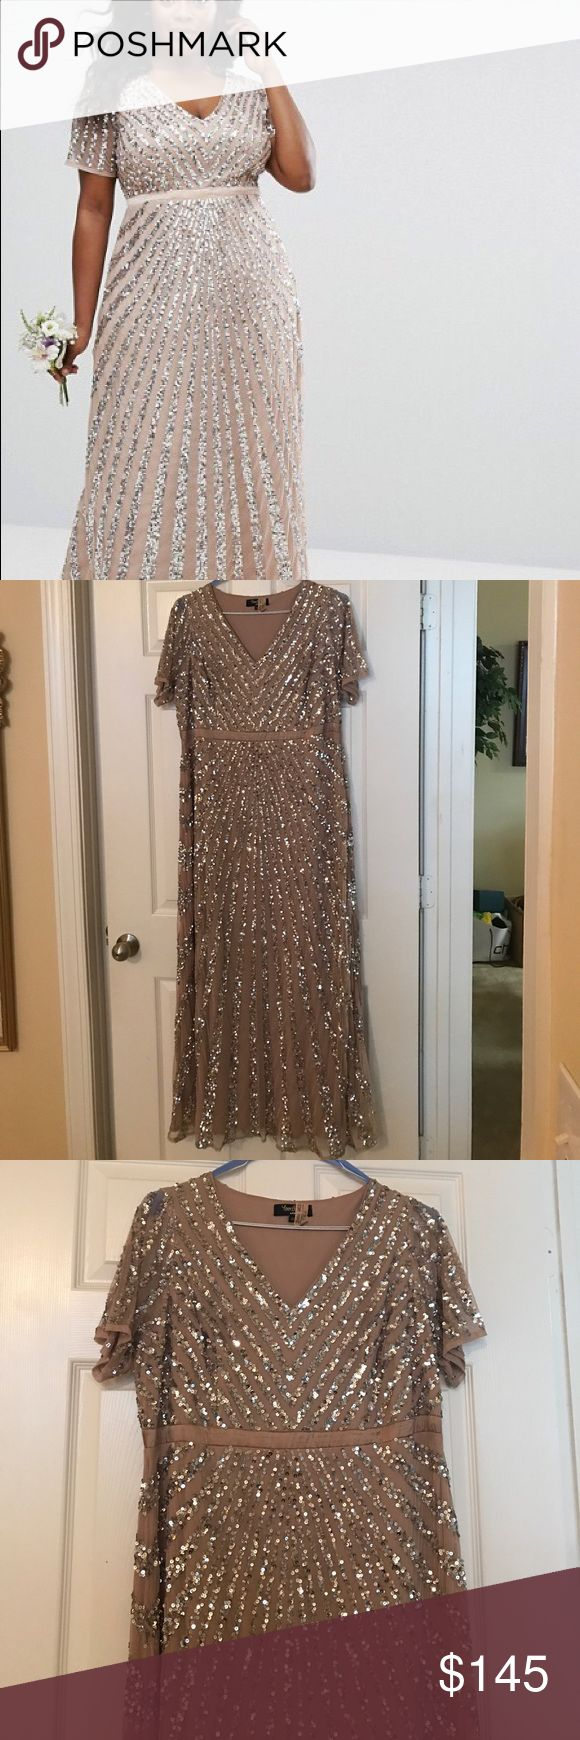 """blush sequin/beaded bridesmaid dress only worn this beautiful Asos sequin dress one time in a wedding!  Very comfortable and modest style.  Has a tan/blush tint of color with flattering silver sequin pattern all over!  Has been hemmed to my height (~5'2 // 5'3"""").  Sizing is European and can easily be taken in! Lovedrobe Dresses"""